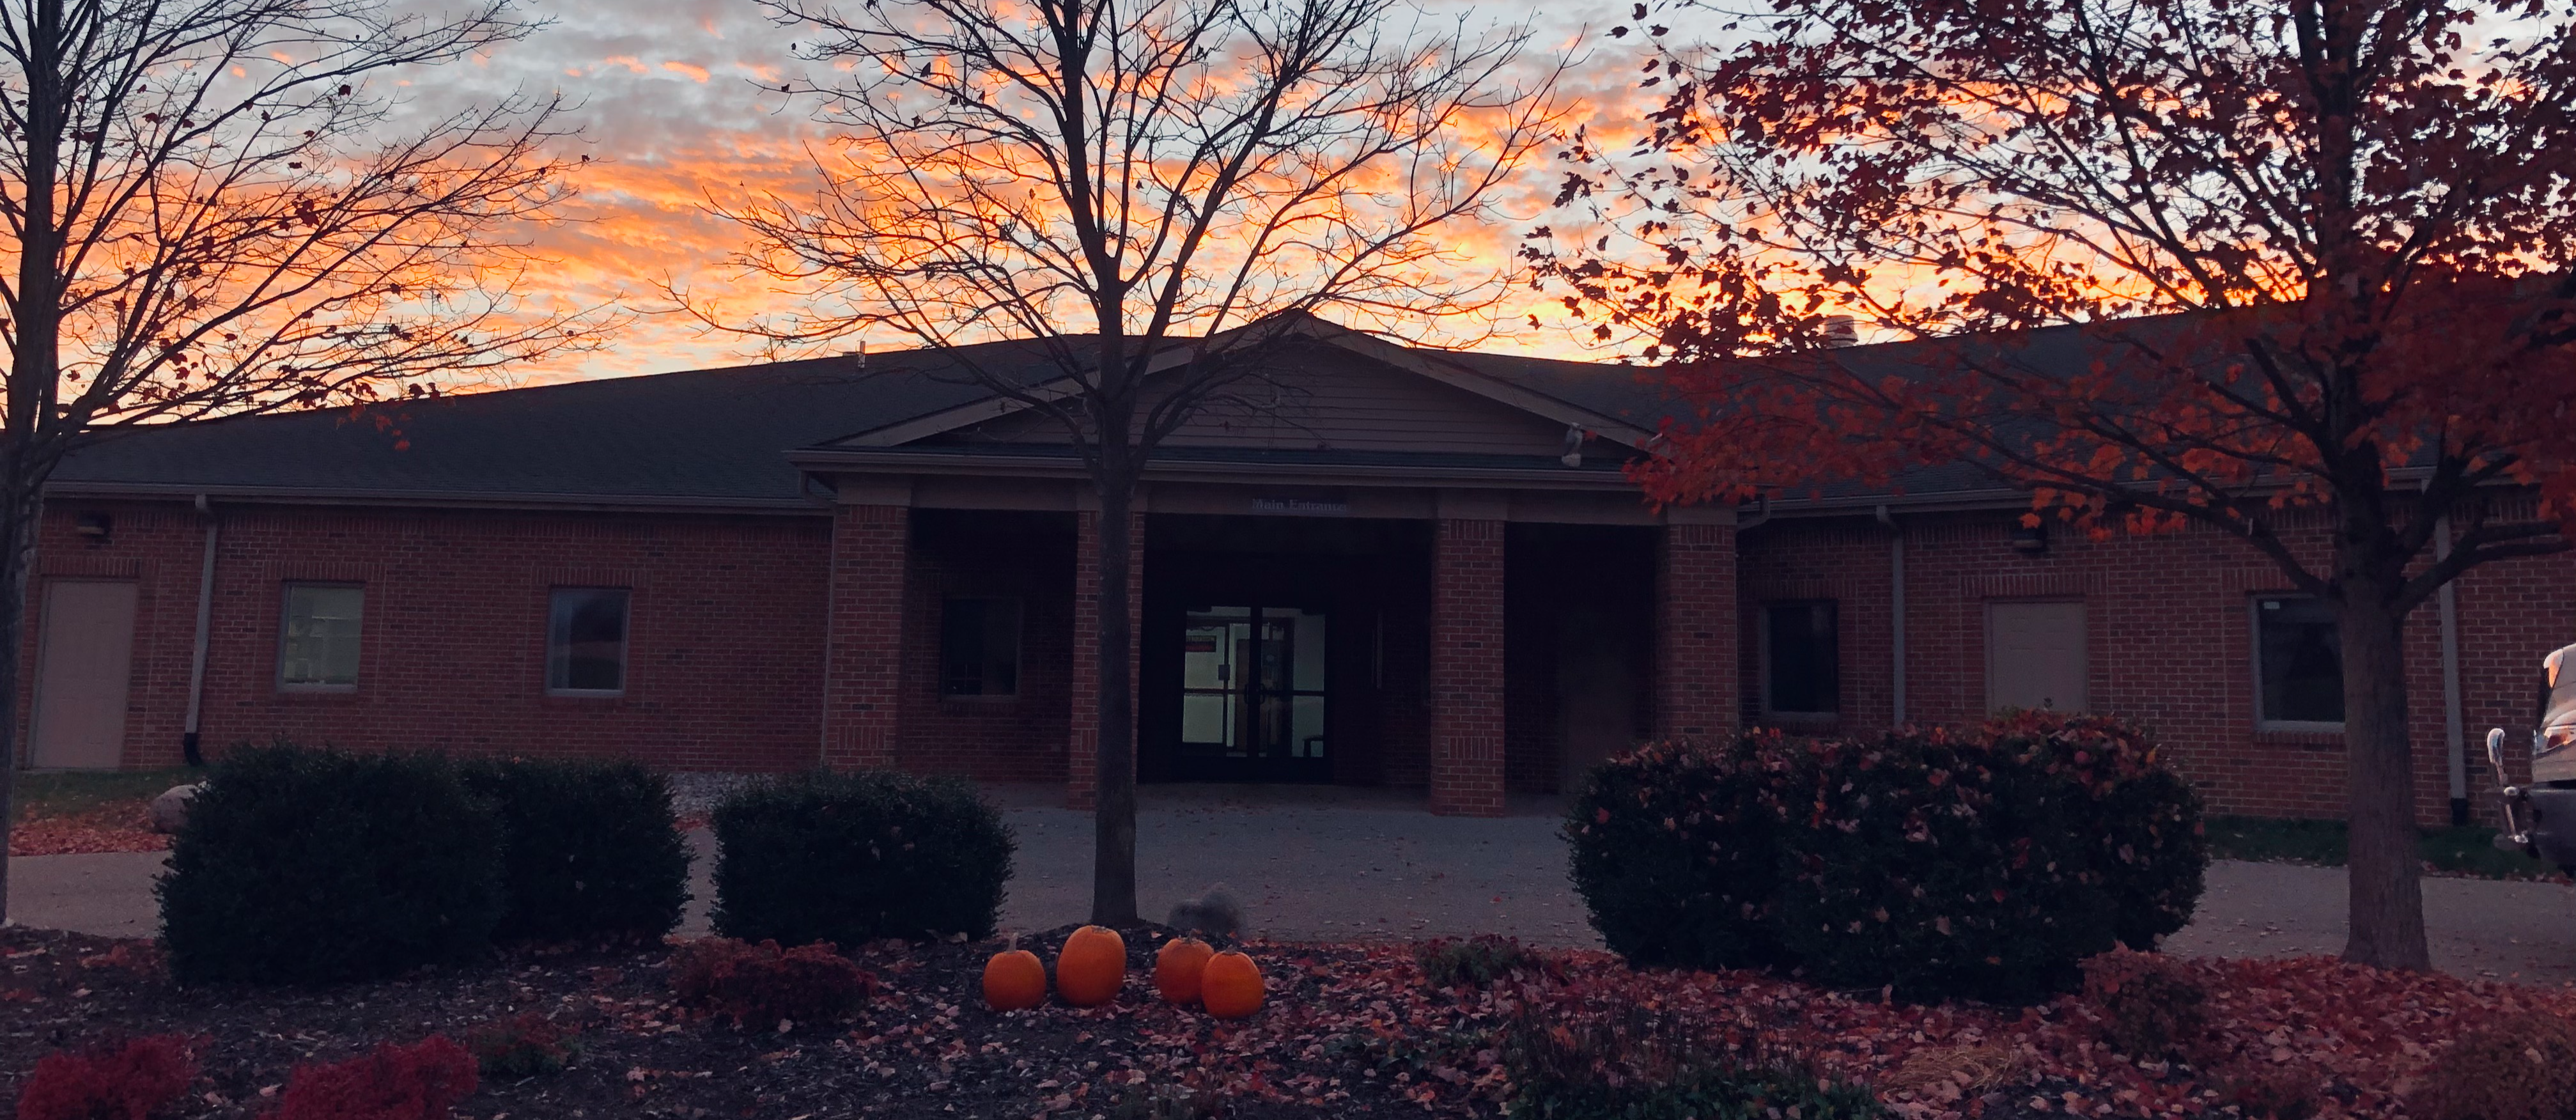 campus with sunset